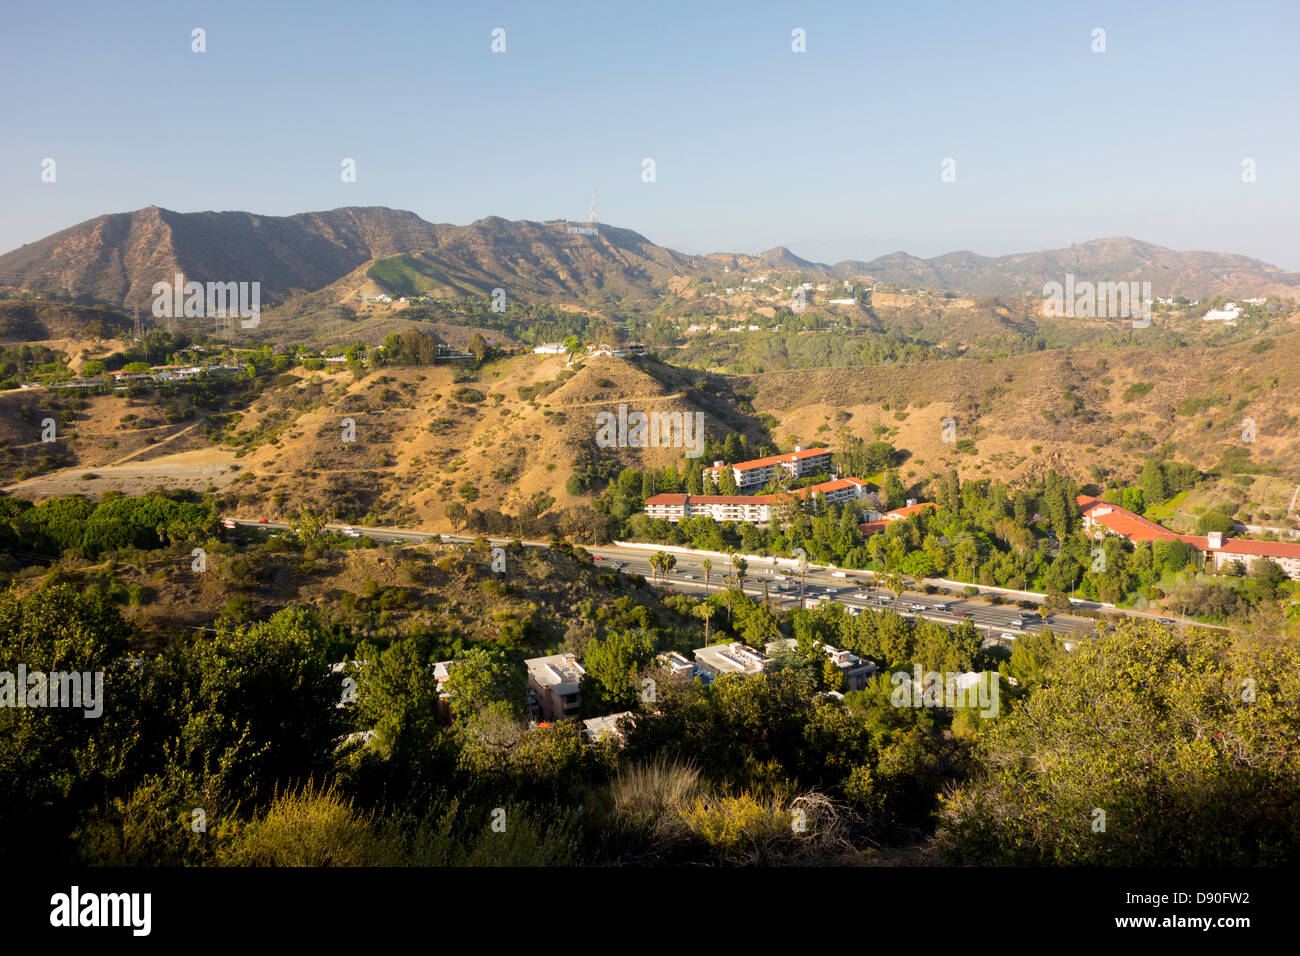 Autostrada superstrada 101 scorre attraverso il Cahuenga Pass e colline di Hollywood a Los Angeles California Meridionale Immagini Stock